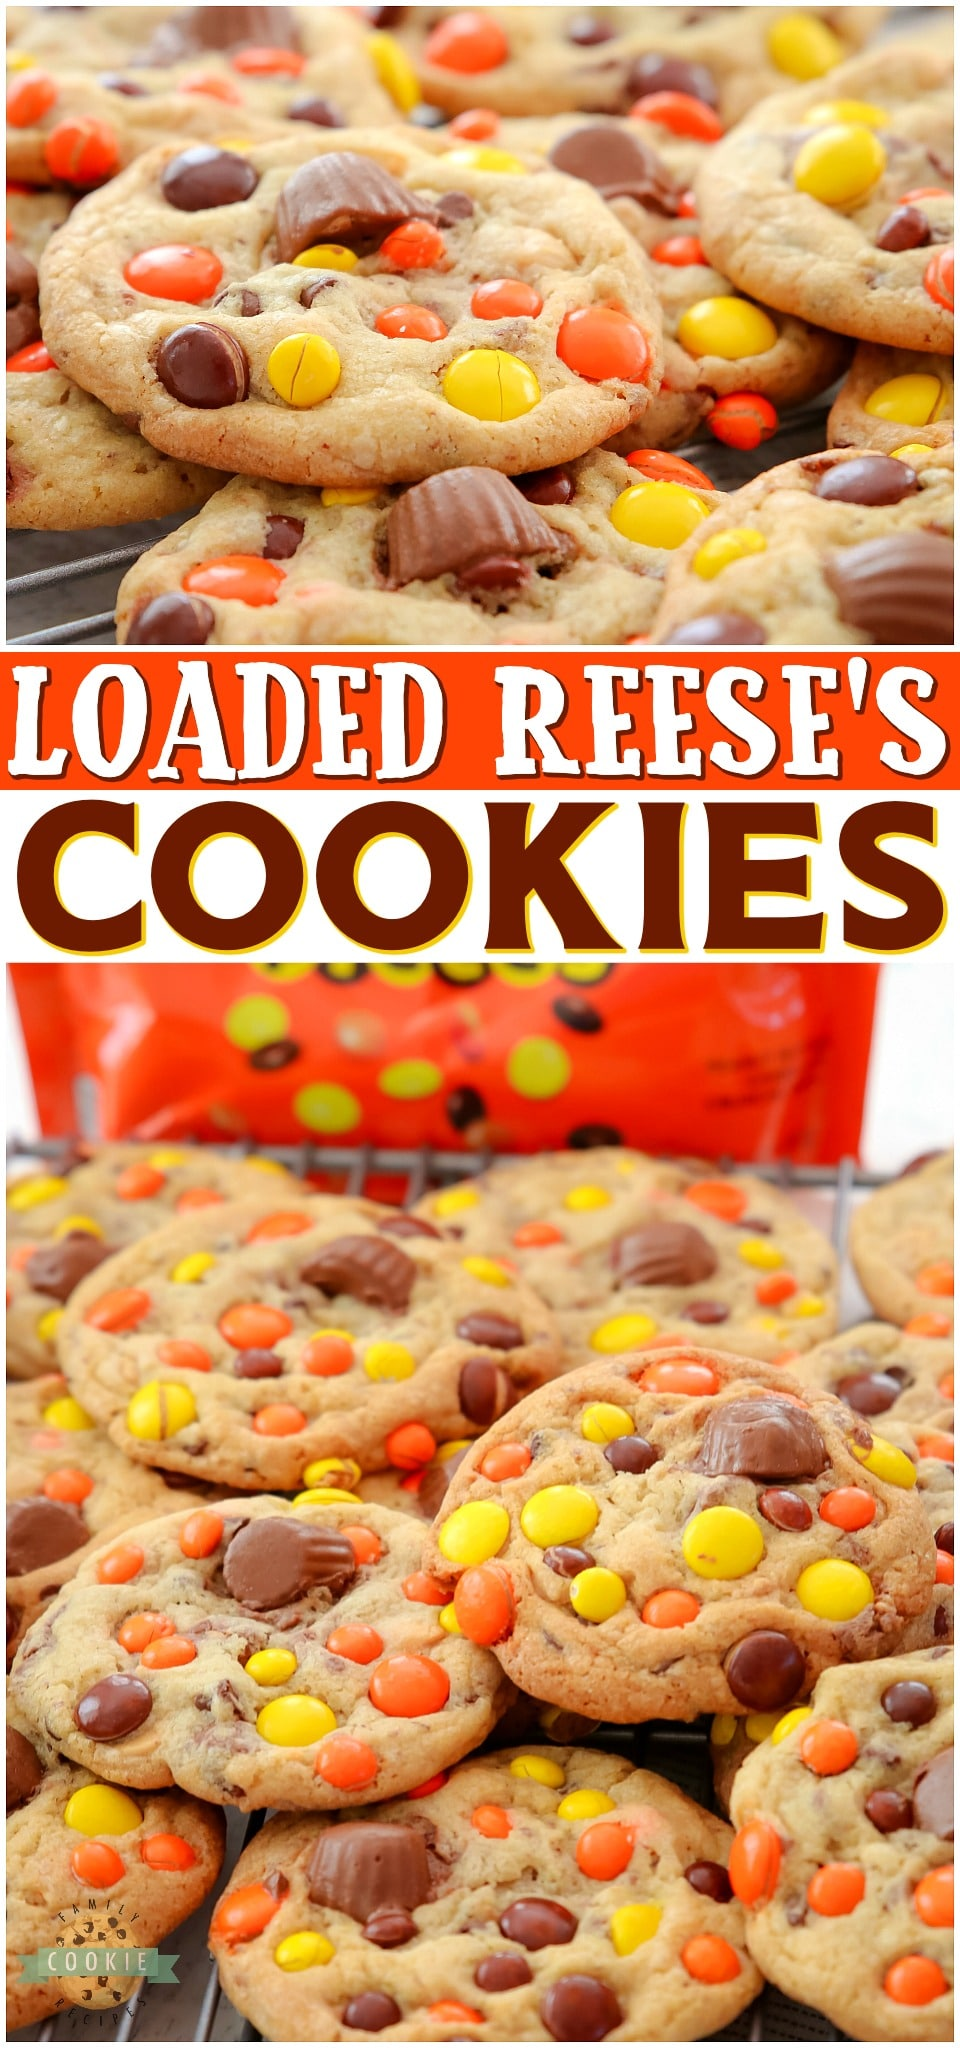 Loaded Reese's Pieces Cookies PERFECT for Reese's Peanut Butter Cup lovers! Soft & buttery cookies packed with Reese's Pieces & topped with mini PB cups for an over-the-top Reese's dessert! #cookies #Reeses #peanutbutter #chocolatechip #baking #easyrecipe from FAMILY COOKIE RECIPES via @familycookierecipes